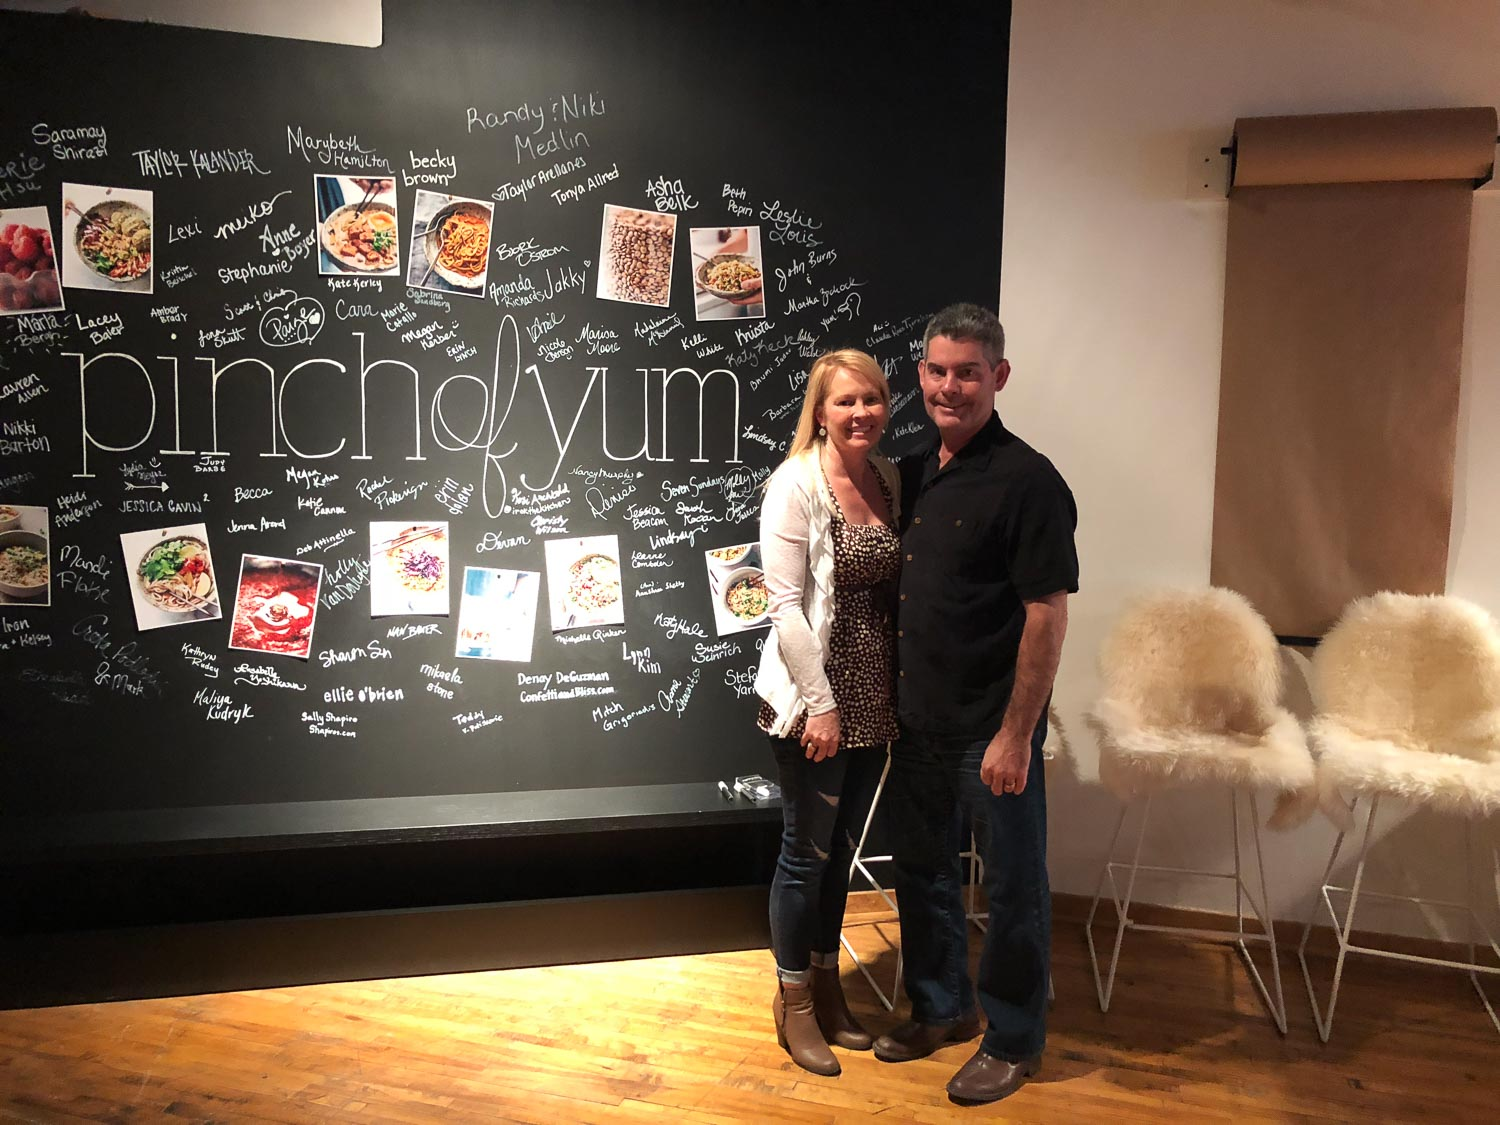 Randy and Me in Front of Chalkboard Pinch of Yum Workshop